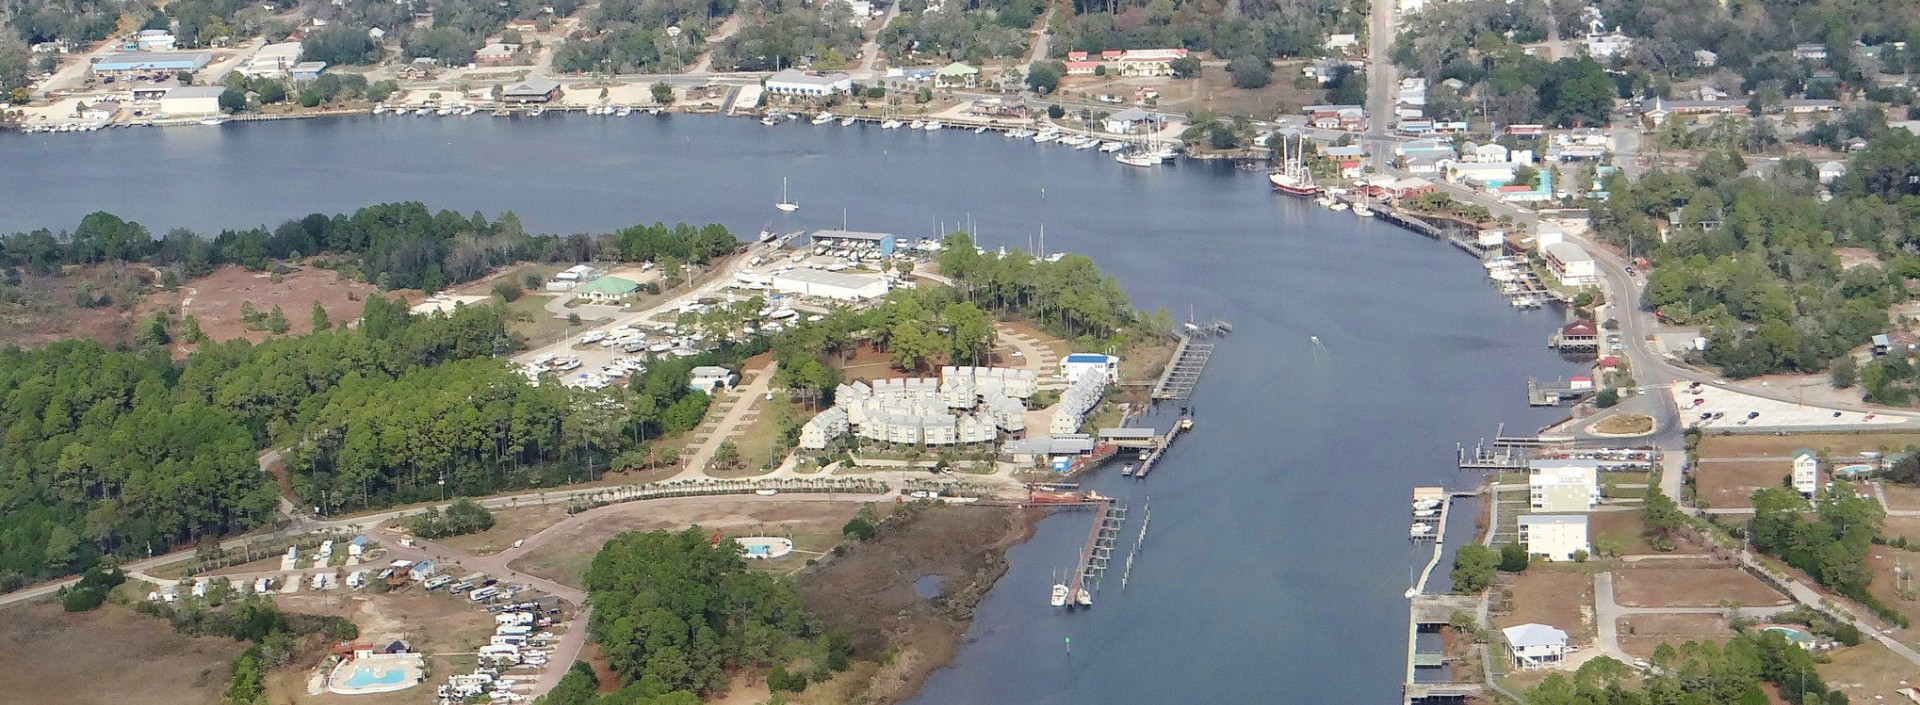 Aerial View of Carrabelle